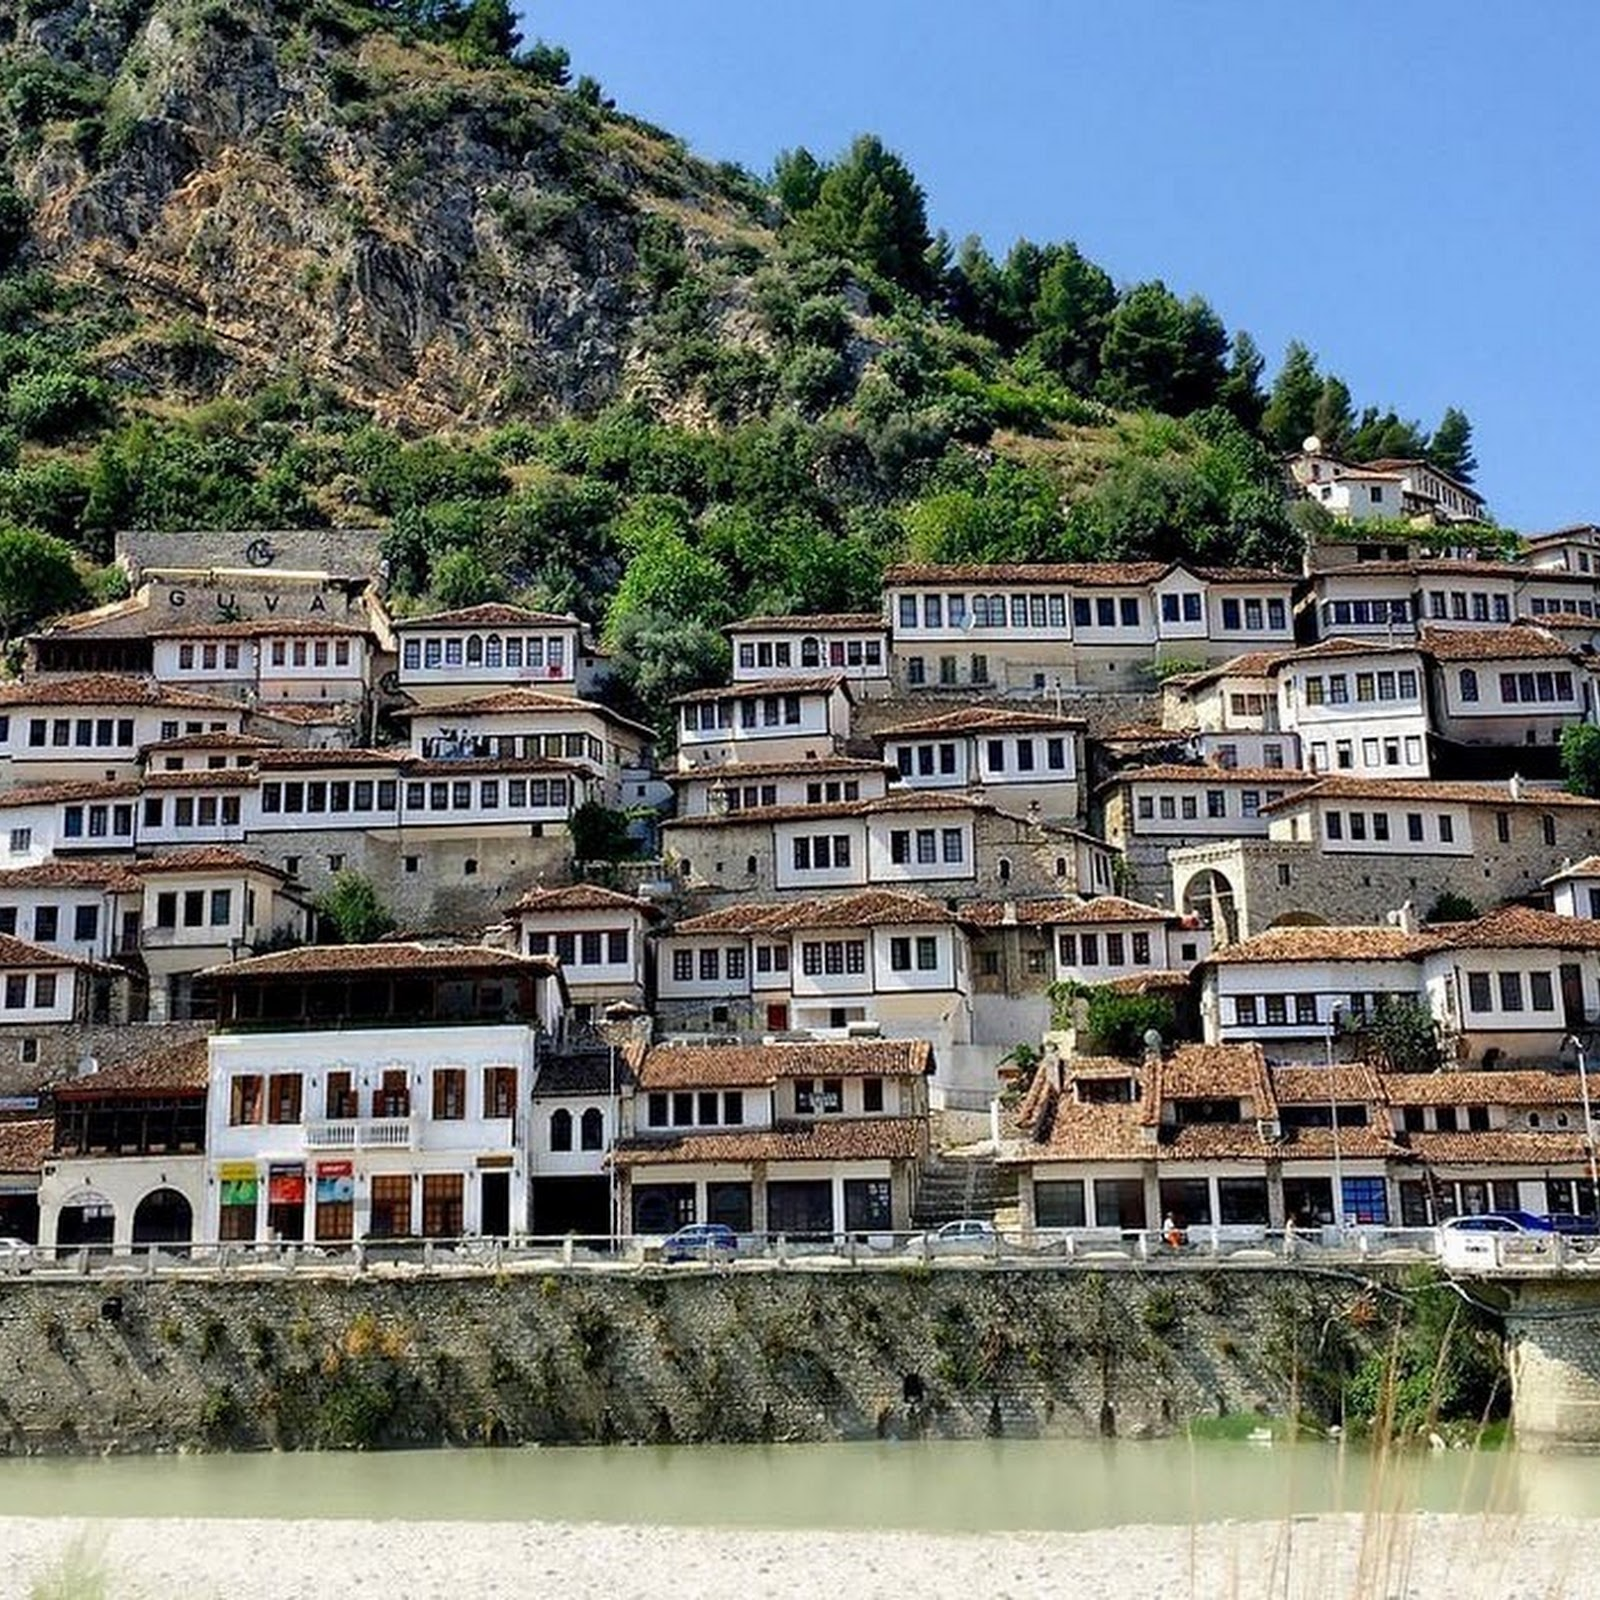 Berat, The City of Thousand Windows